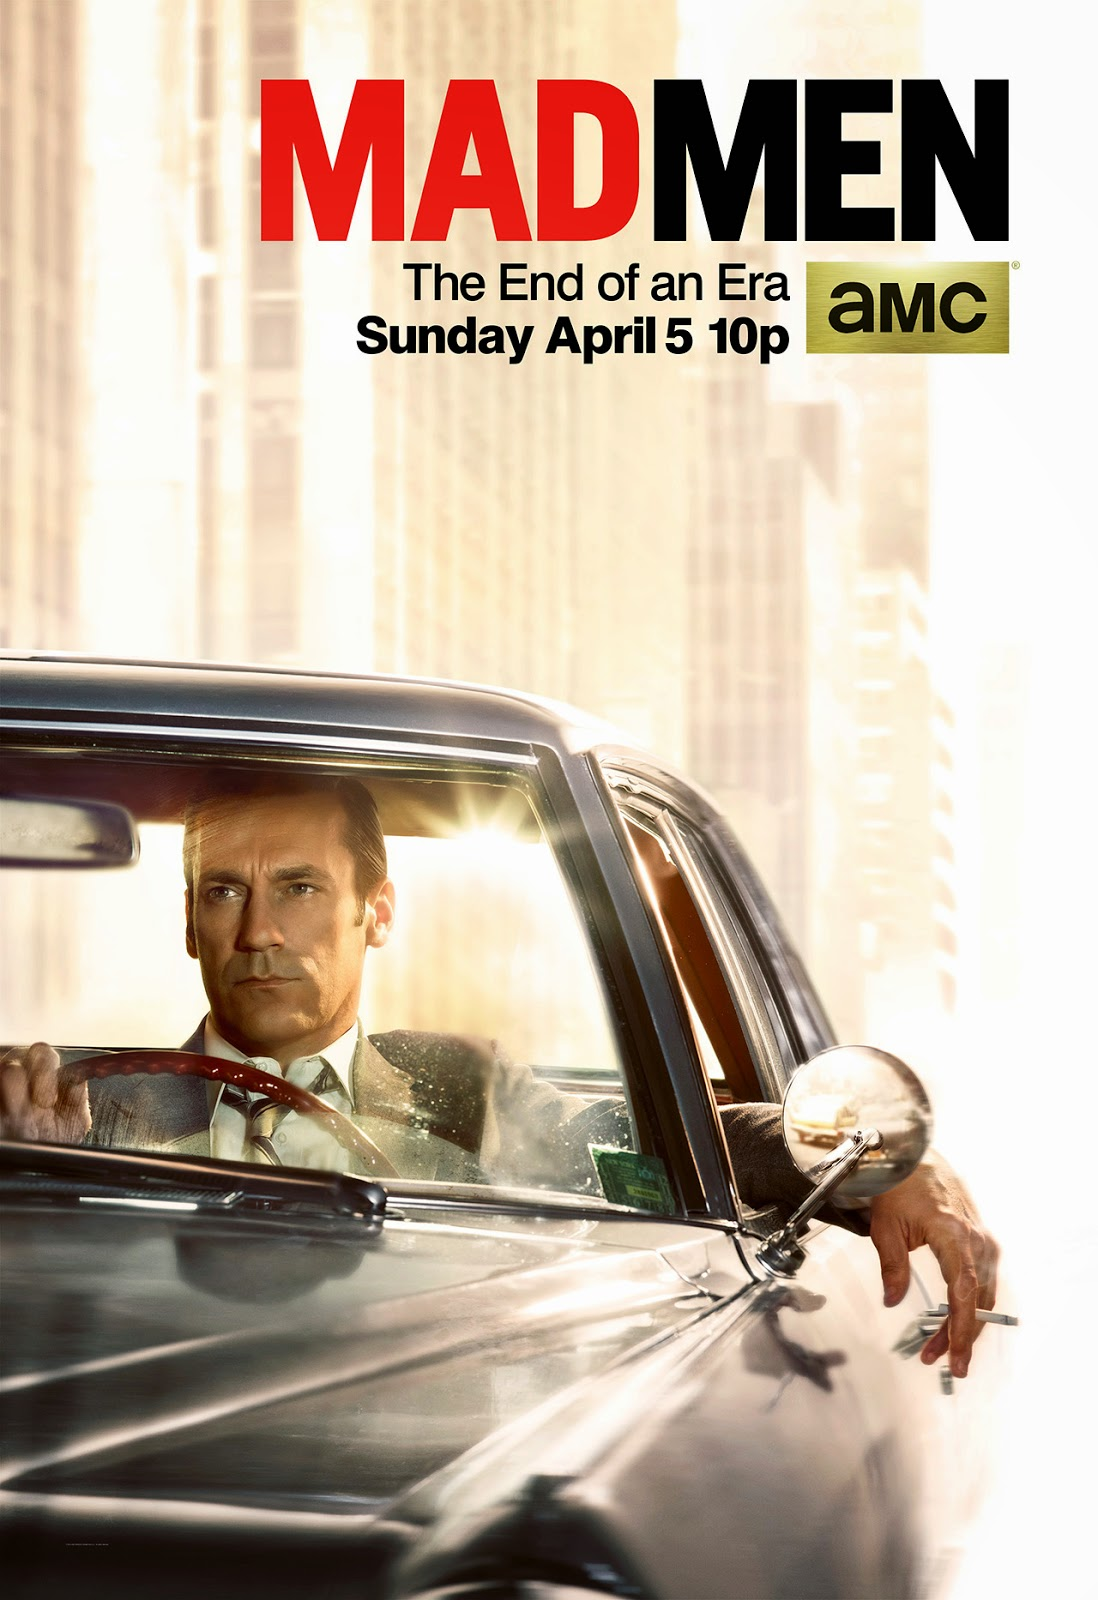 http://images.amcnetworks.com/blogs.amctv.com/wp-content/uploads/2015/02/mad-men-season-7B-key-art-1280.jpg?utm_campaign=amc_newsletters%3A14017%3Aamcnewsletter&utm_medium=email%3Asection%3Darticle_main_permalink&utm_source=2015-02-27%3A906233238%3Anew_mad_men_poster_revealed